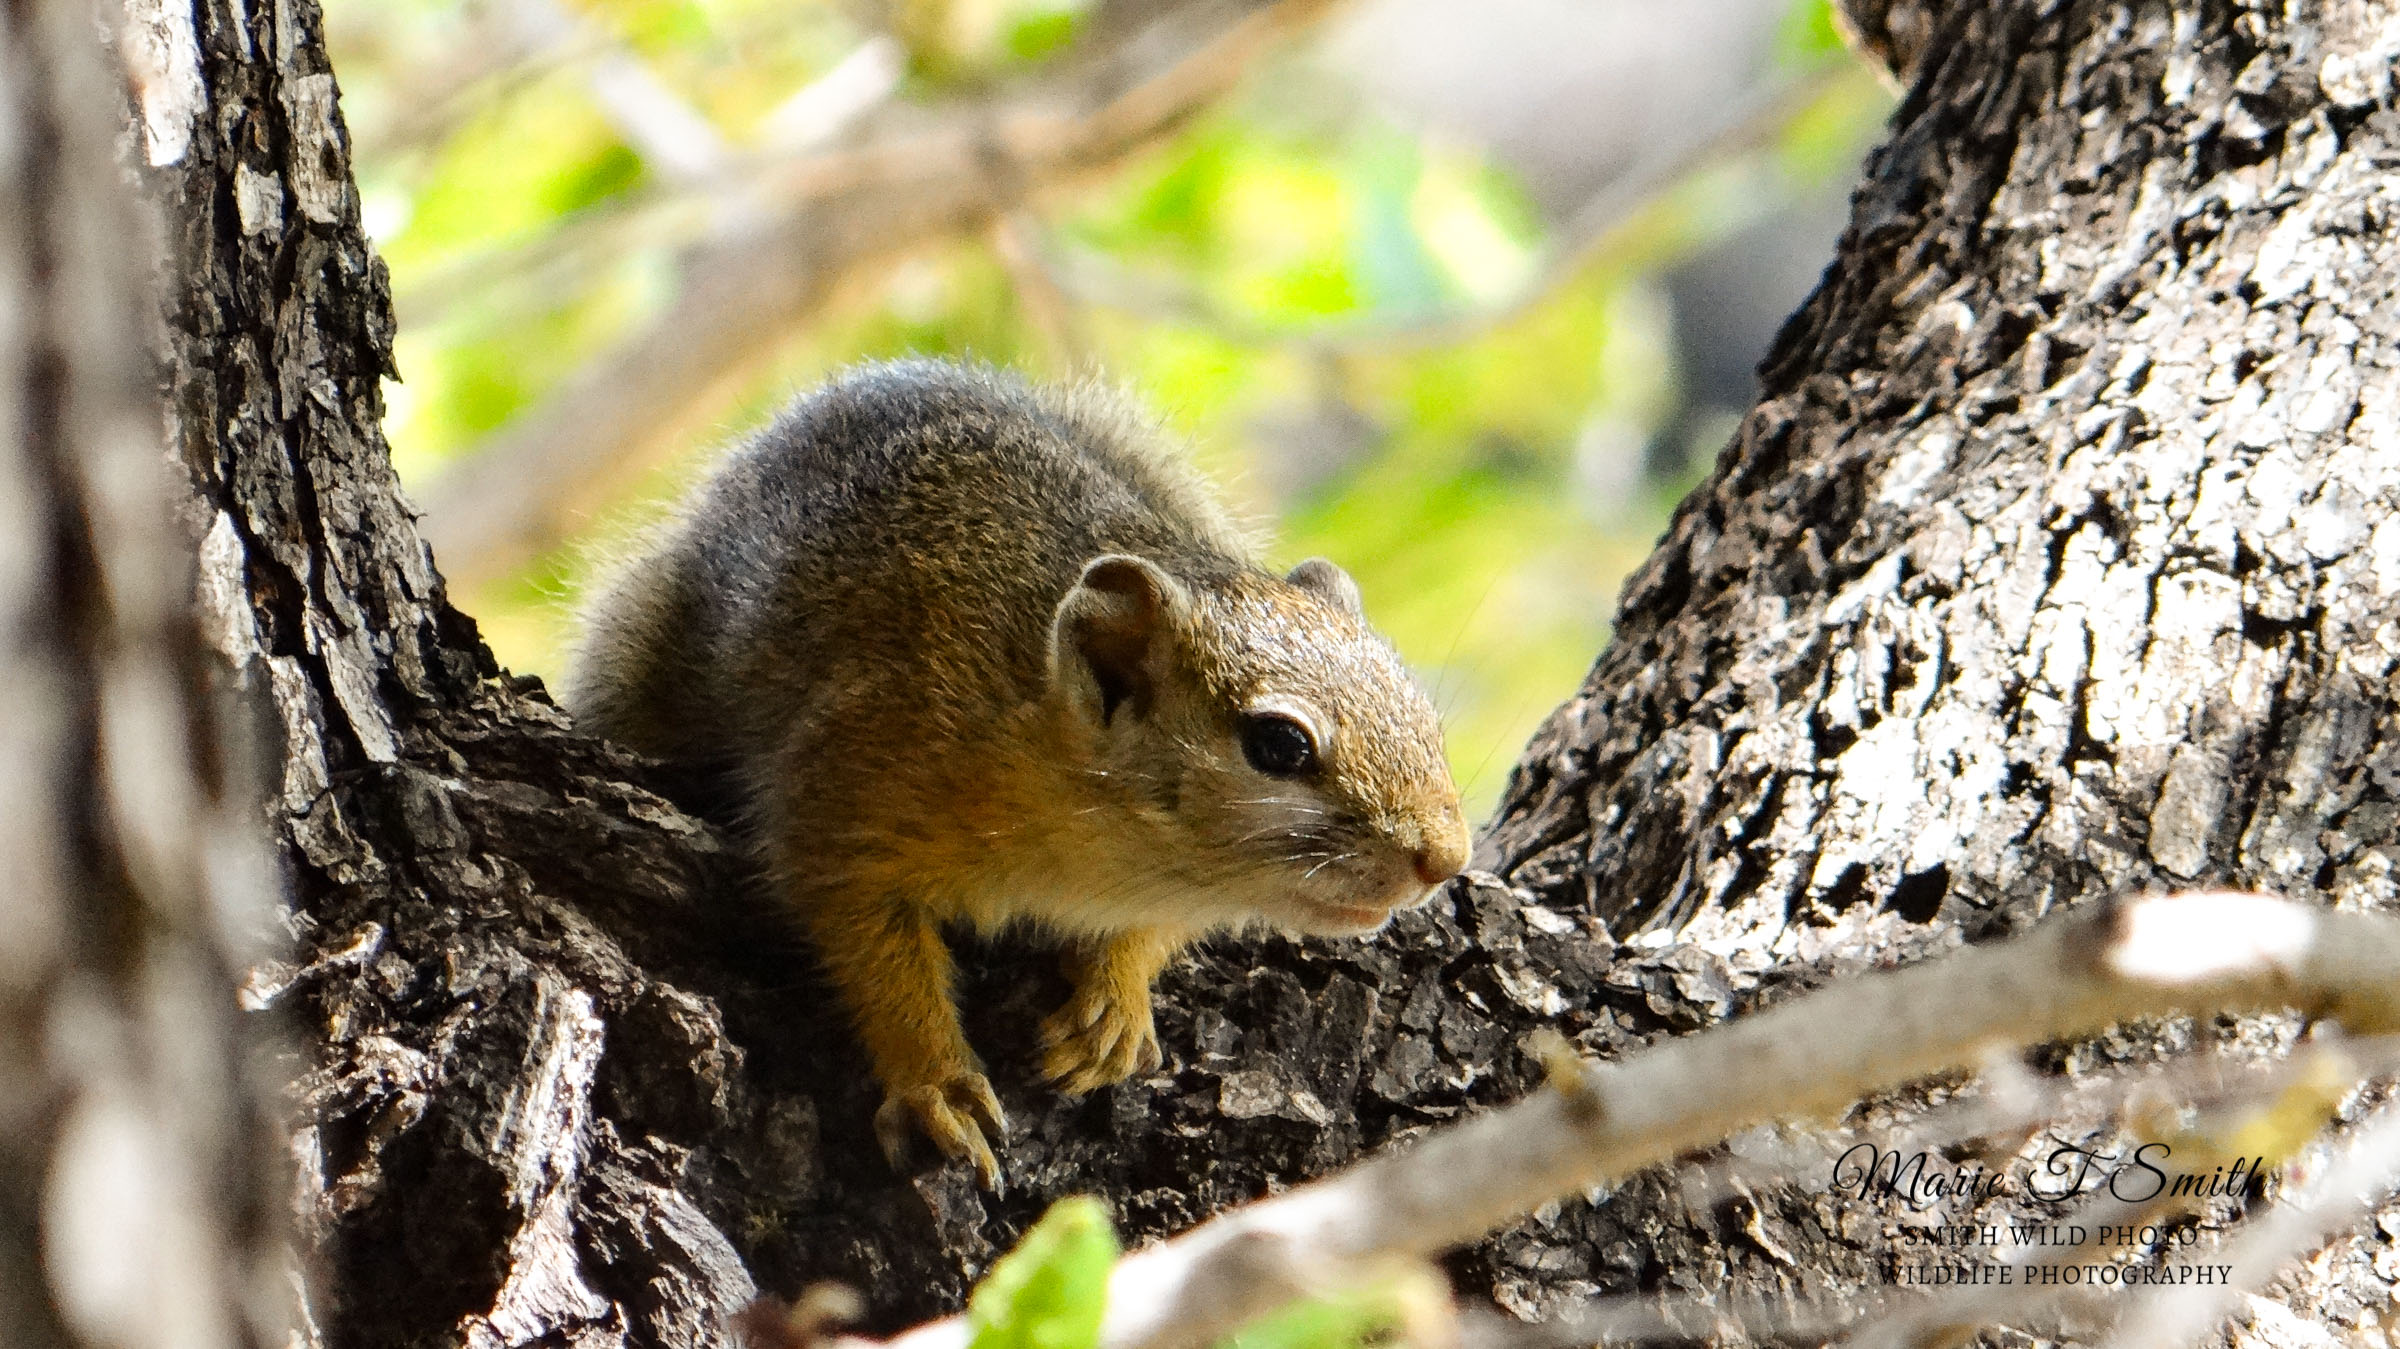 South African bush squirrel in a tree